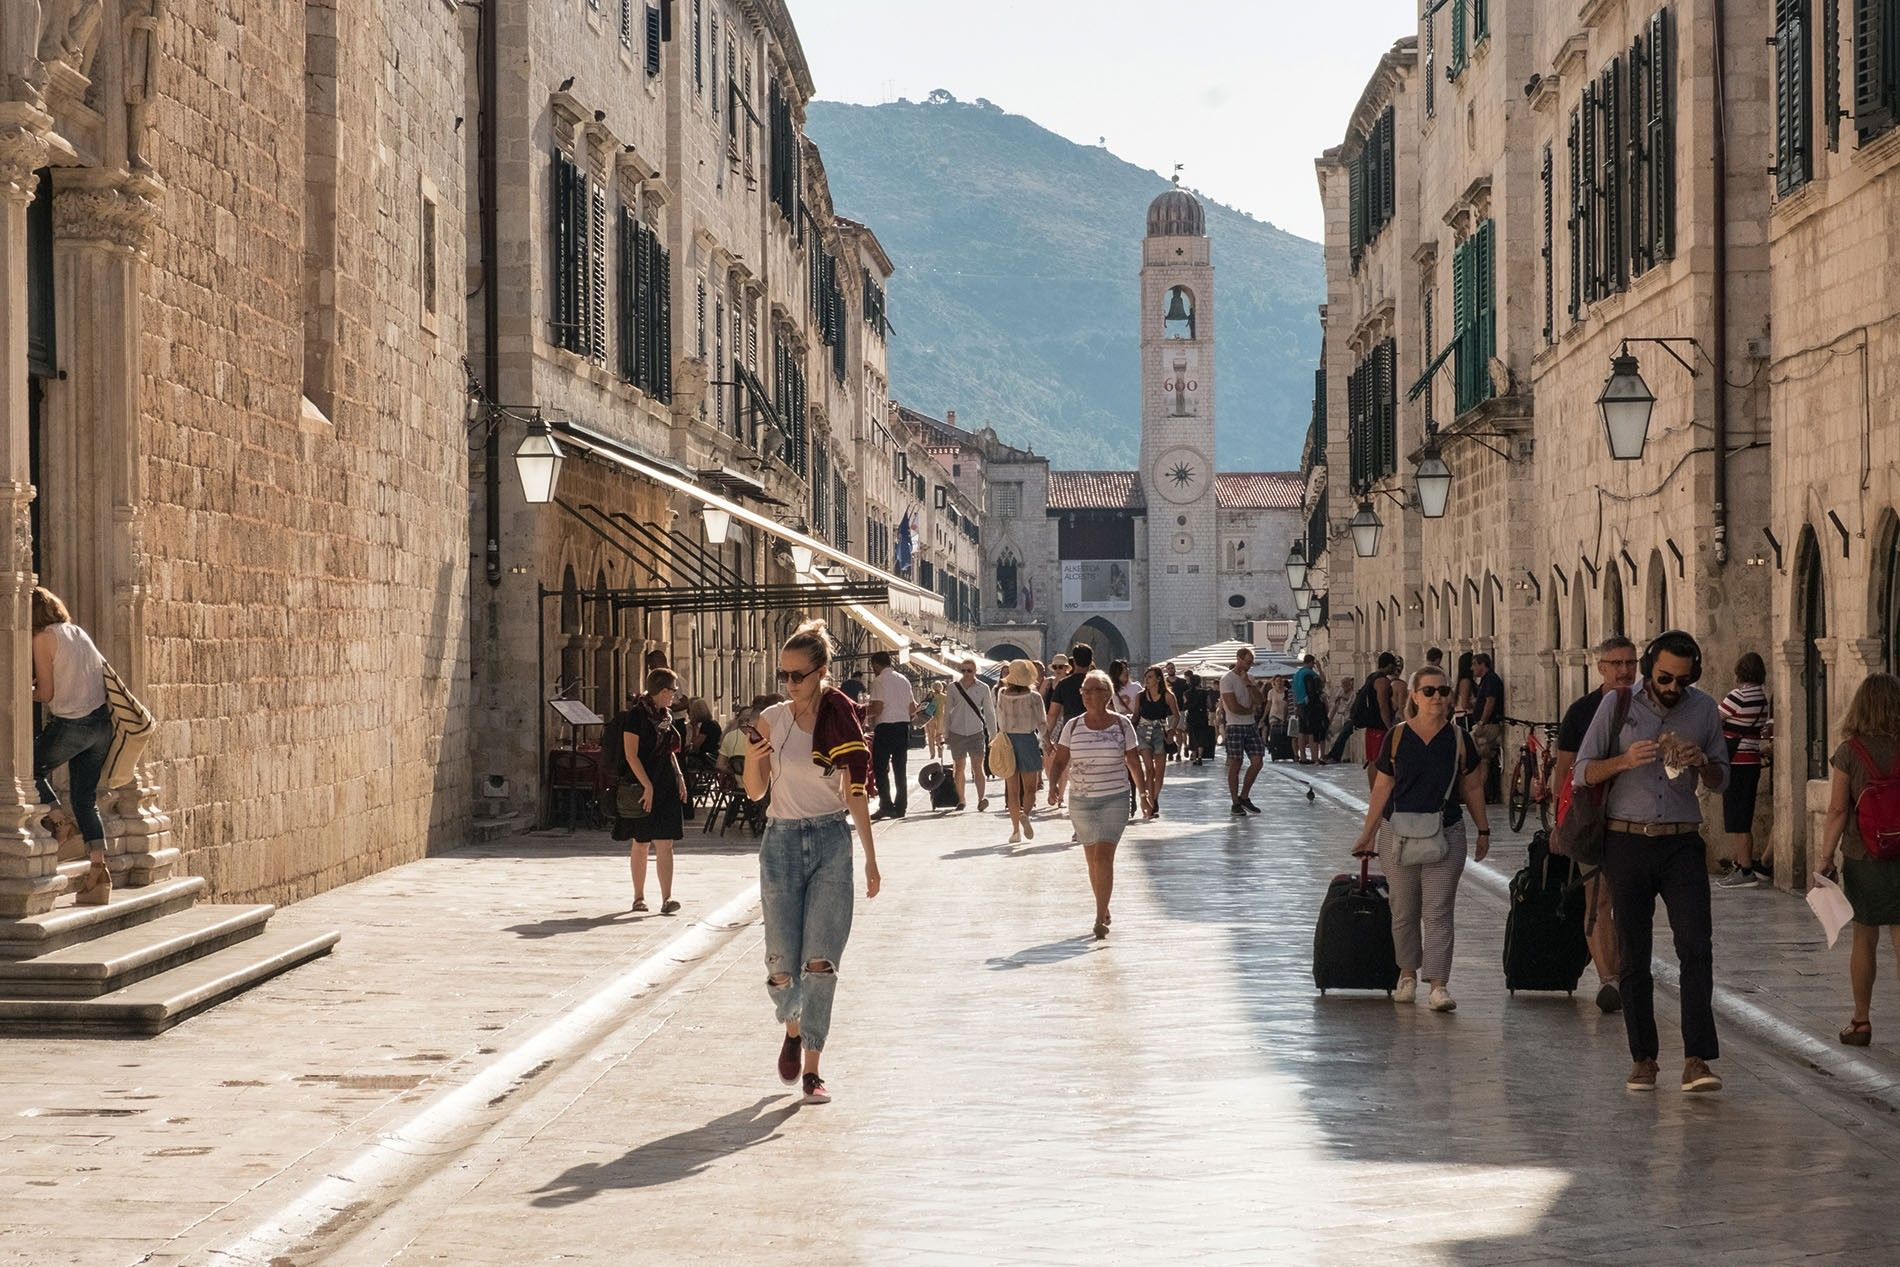 A city guide to Dubrovnik